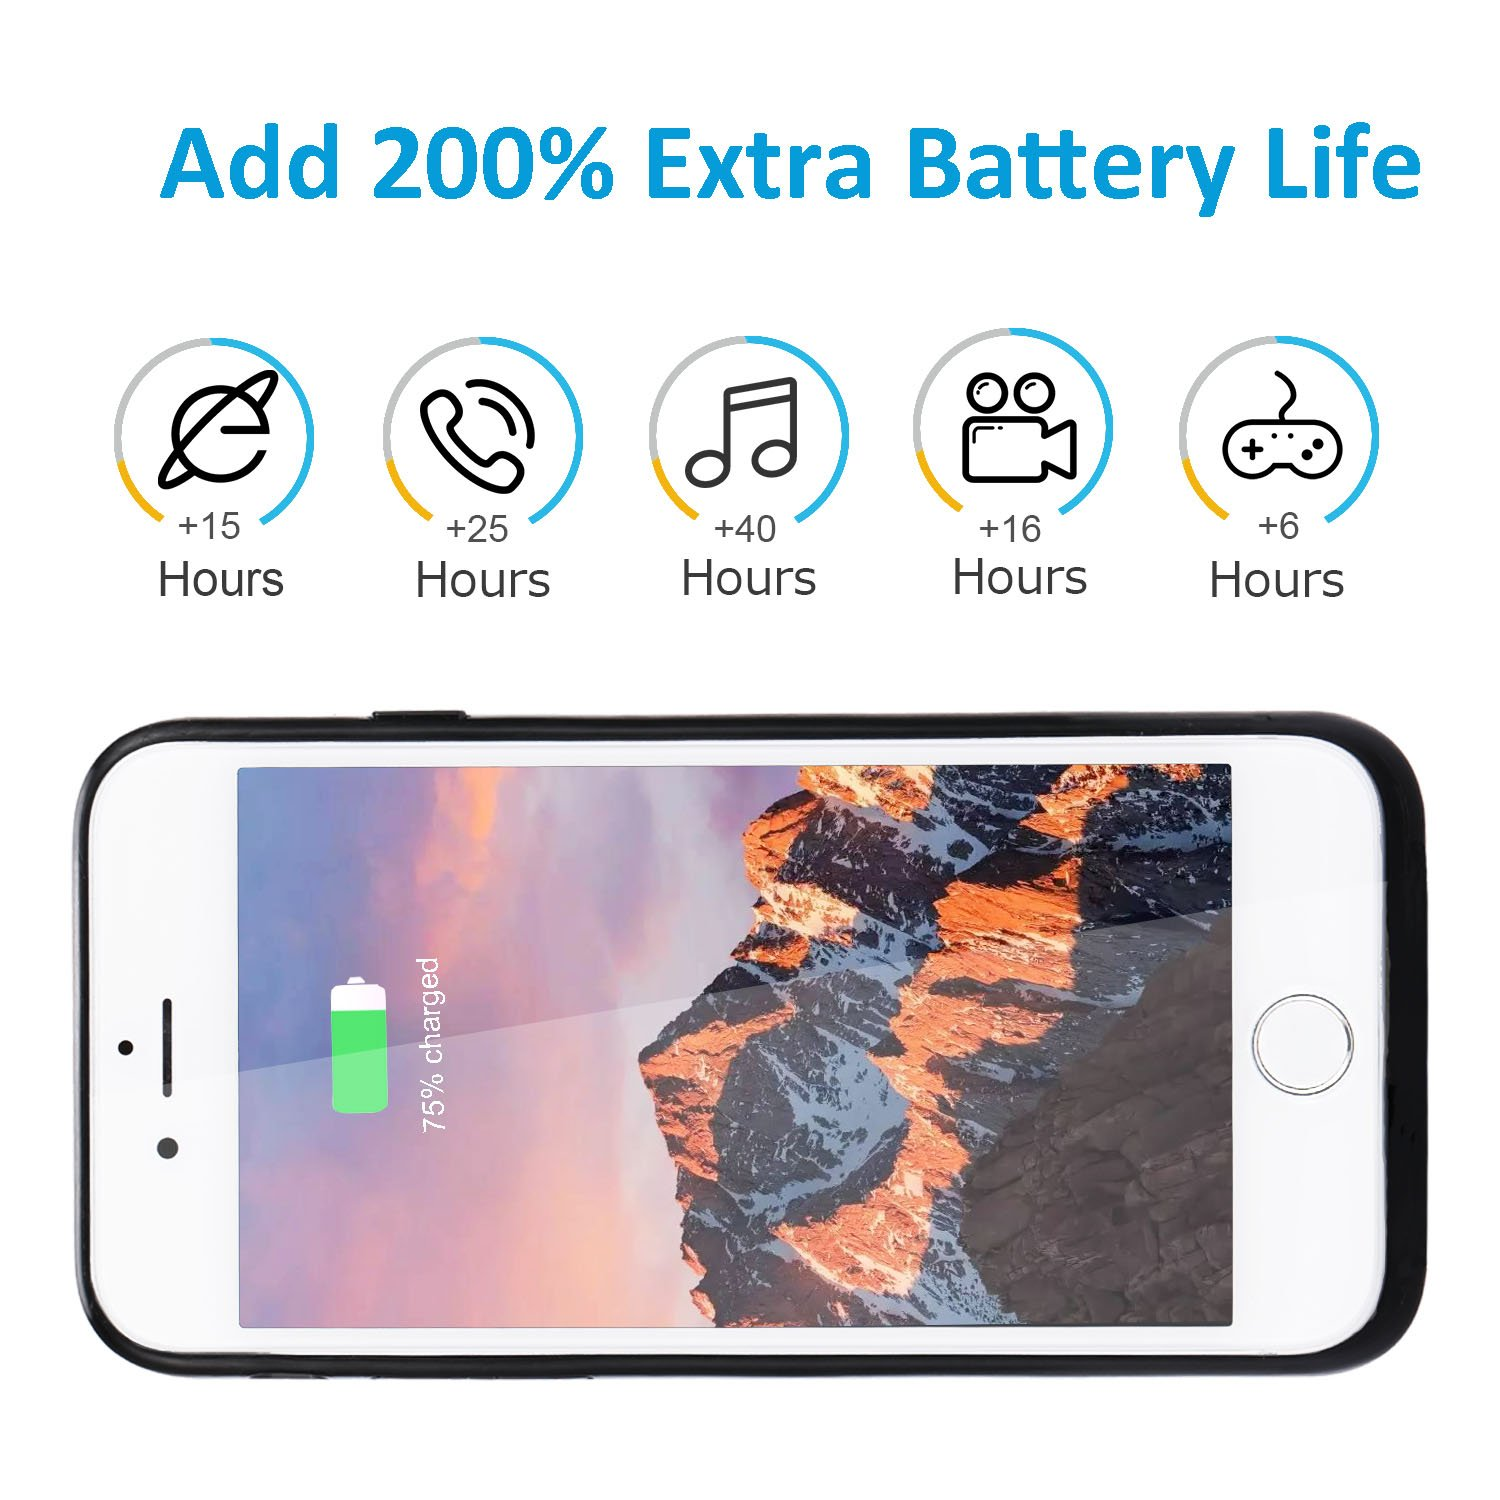 Mozeat Compatible With 4.7 Inch iPhone 6 6s 7 8 Battery Case Slim Rechargeable Protective Case Cover Charger Power Bank Extended 4000 mAh Black Charging Case External Battery Pack For iPhone 6 6s 7 8